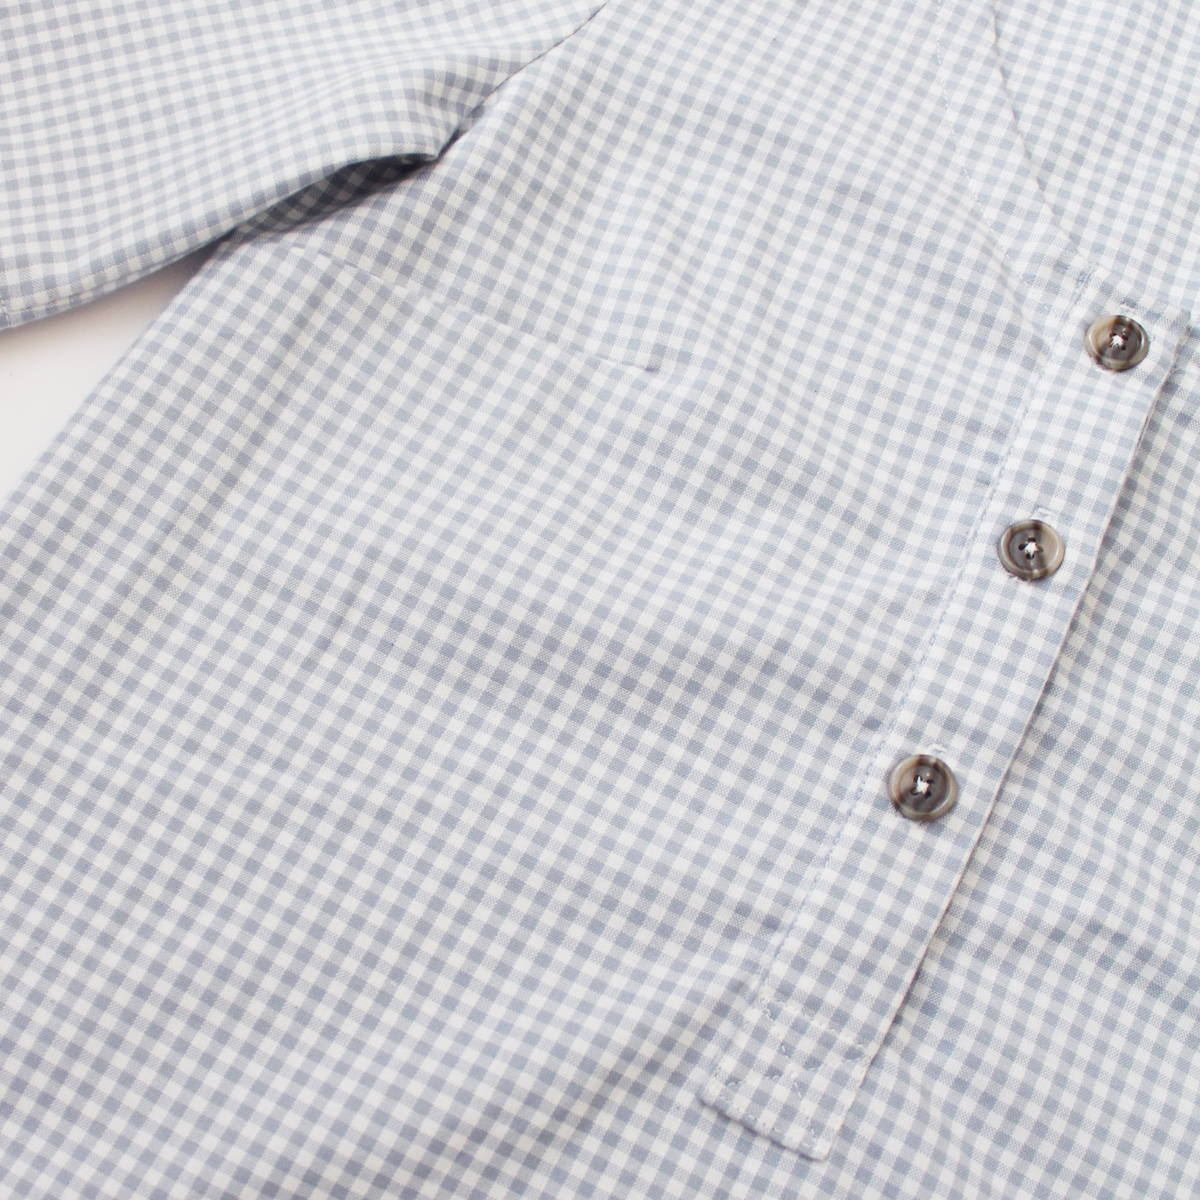 How to Sew a Placket